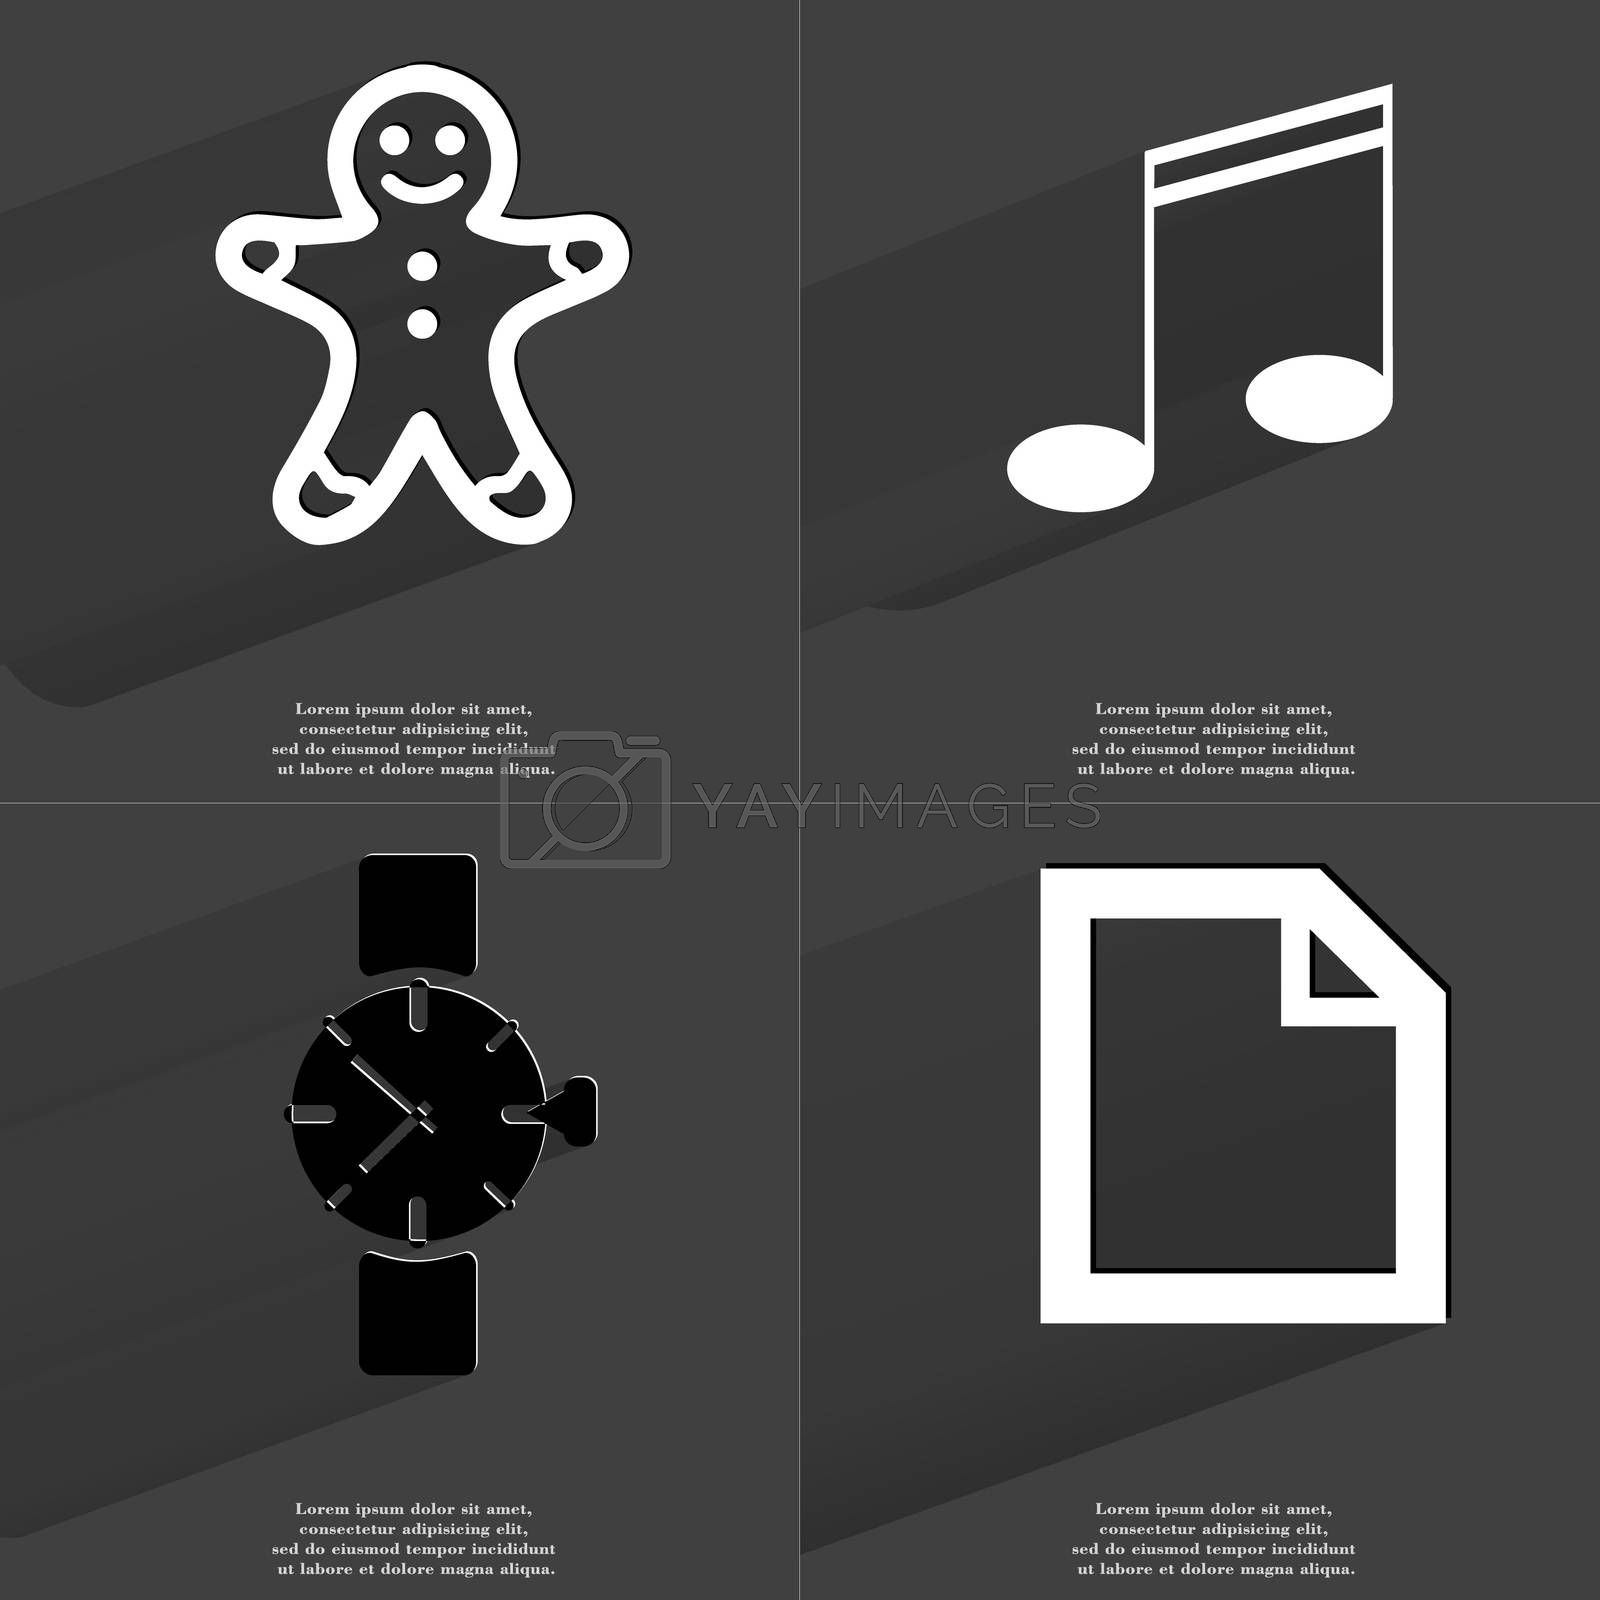 Gingerbread man, Note sign, Wrist watch, File icon. Symbols with long shadow. Flat design by serhii_lohvyniuk